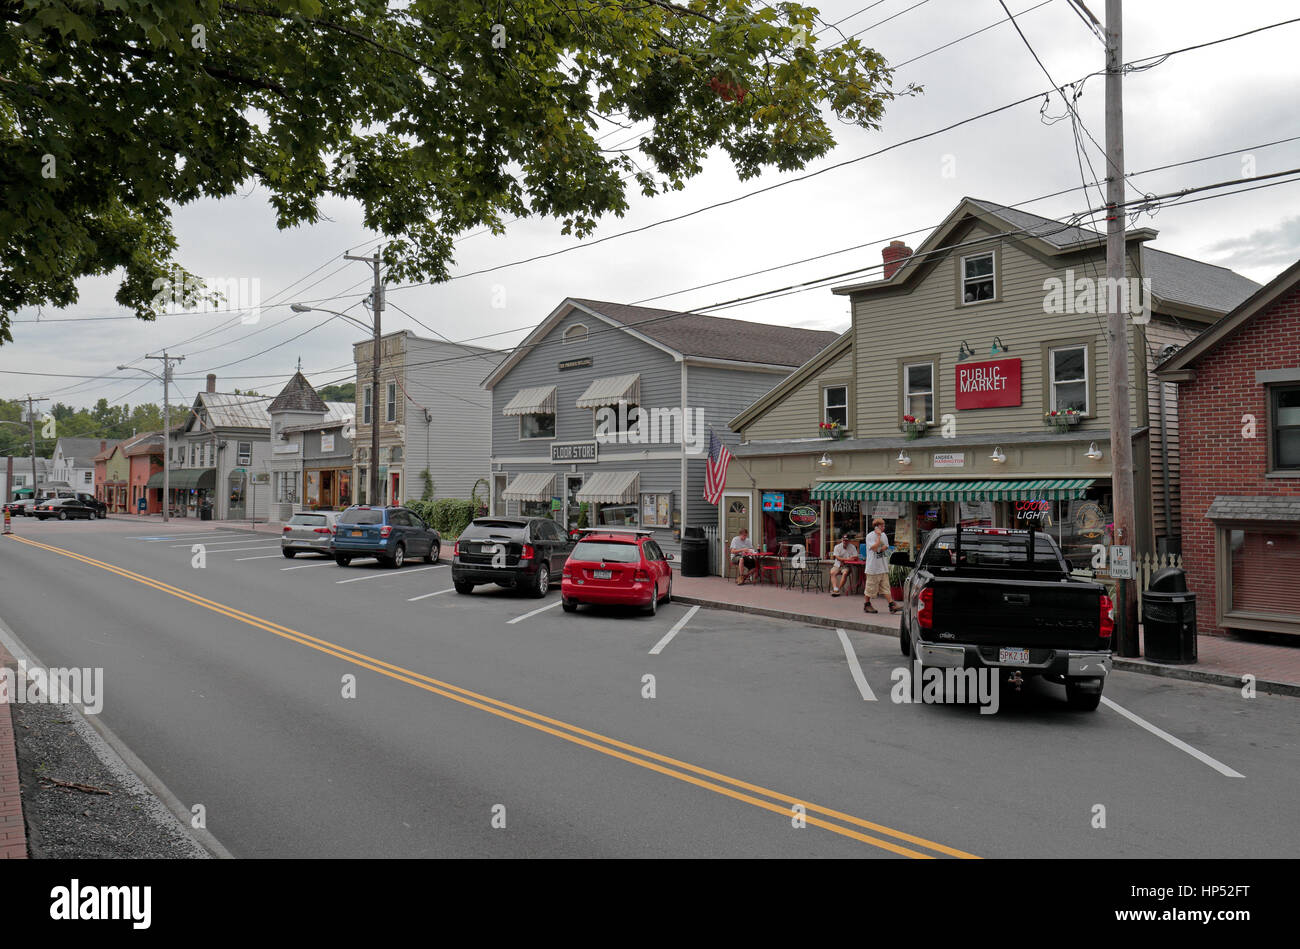 West Stockbridge Ma >> Historic Shopping Area Of West Stockbridge Massachusetts United